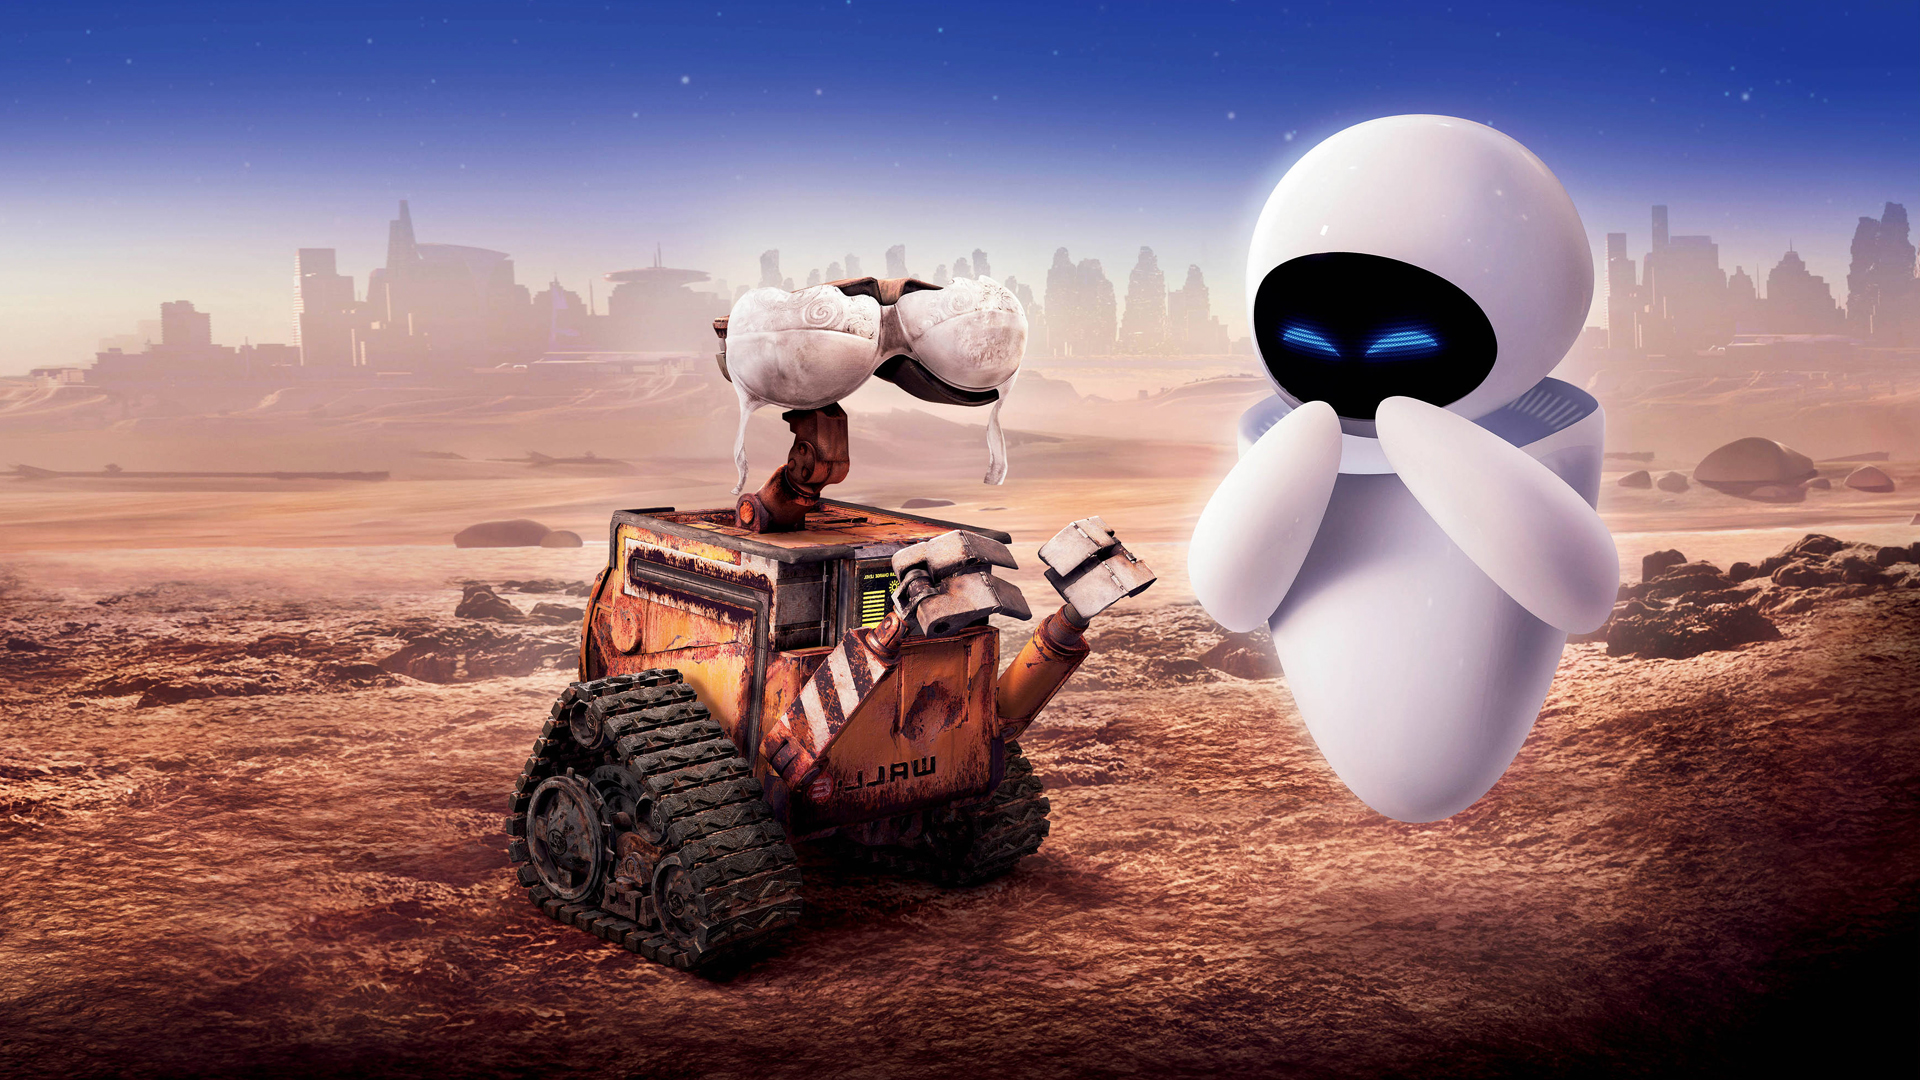 walle-hd-wallpapers-pic-mch0111031 - dzbc